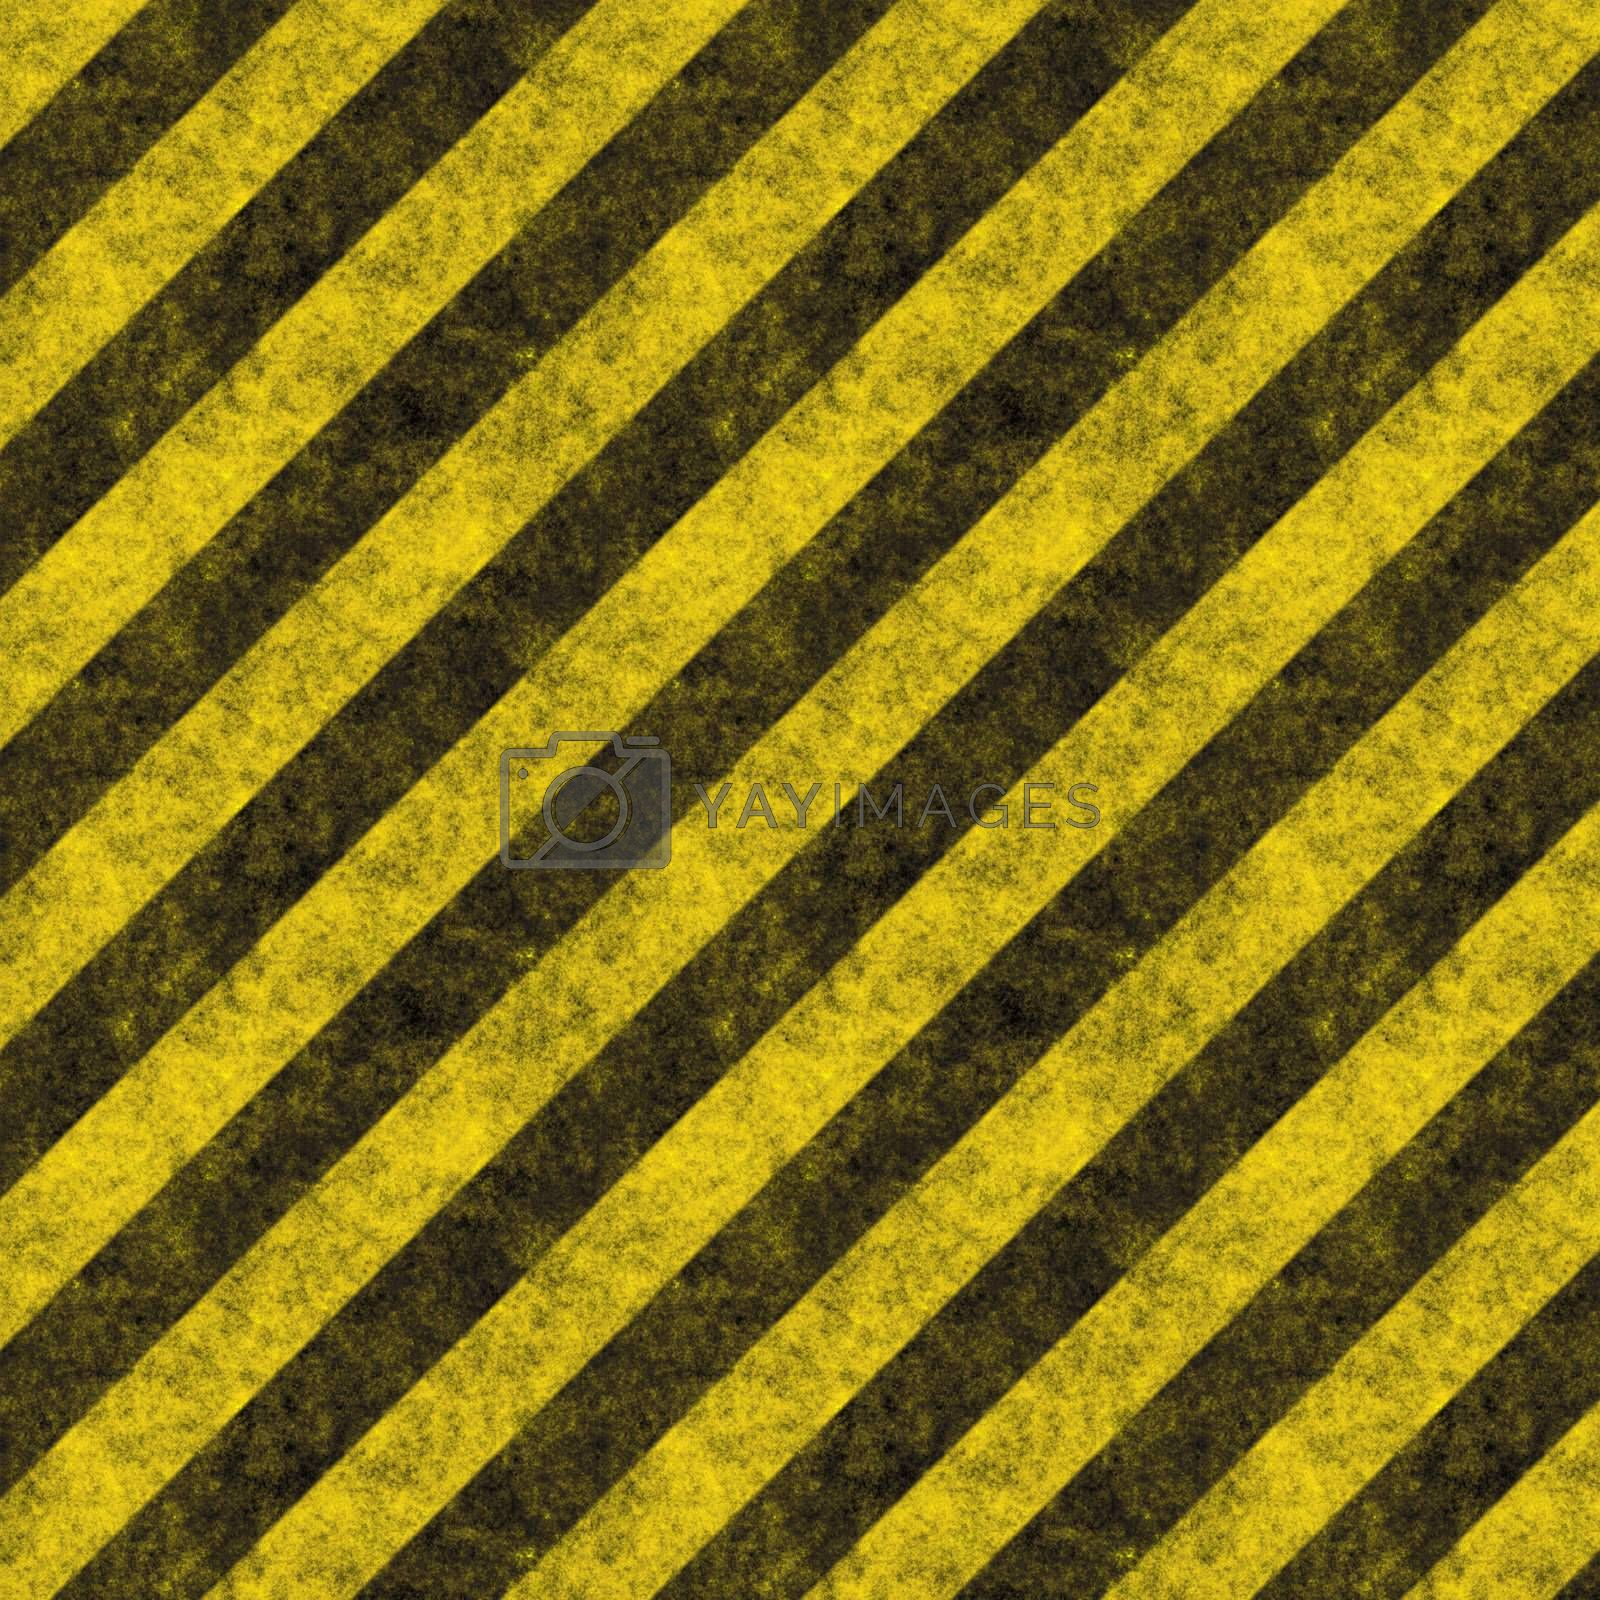 Diagonal hazard stripes texture.  These are weathered, worn and grunge-looking